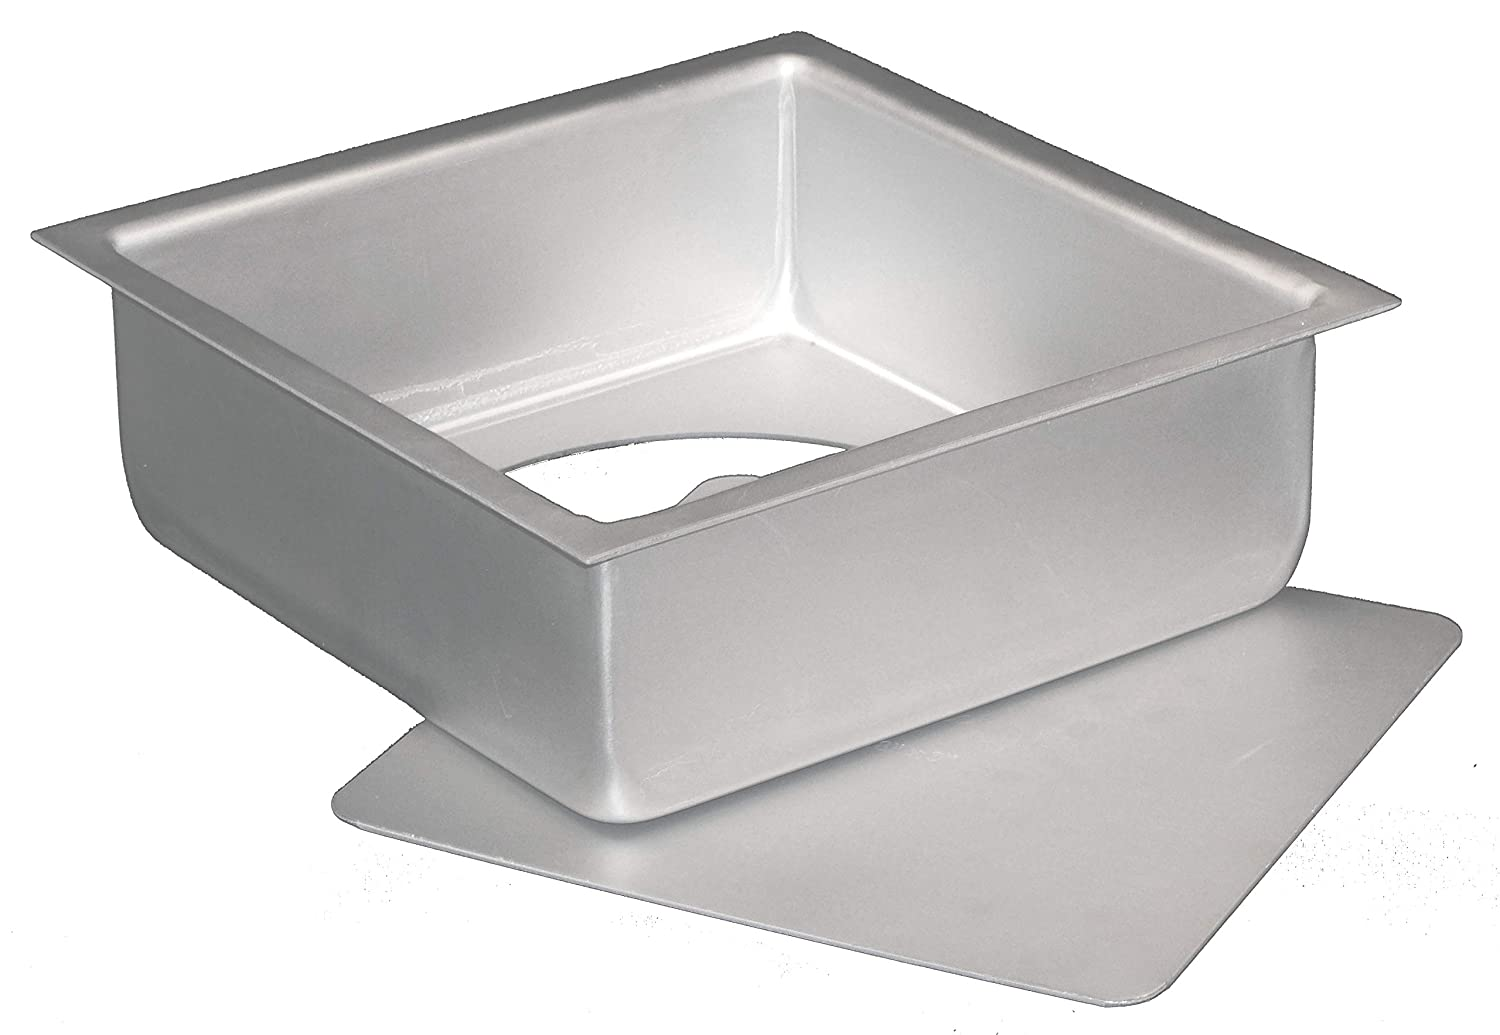 Fat Daddio's Anodized Aluminum Square Cheesecake Pan with Removable Bottom, 6 Inch x 6 Inch x 3 Inch Fat Daddio' s PSQCC-663